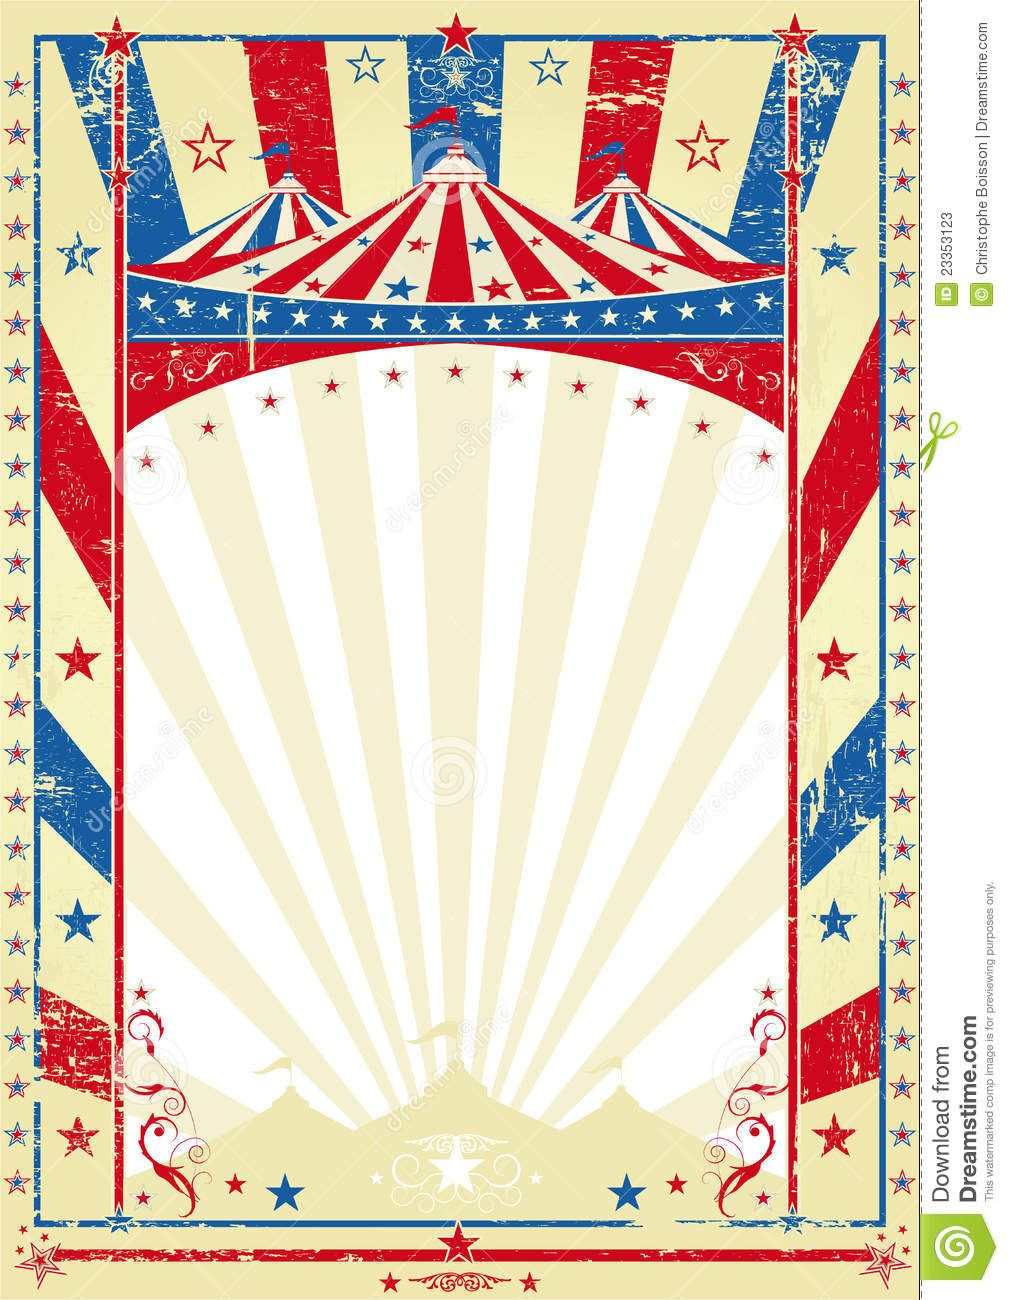 medium resolution of image result for free carnival clipart images